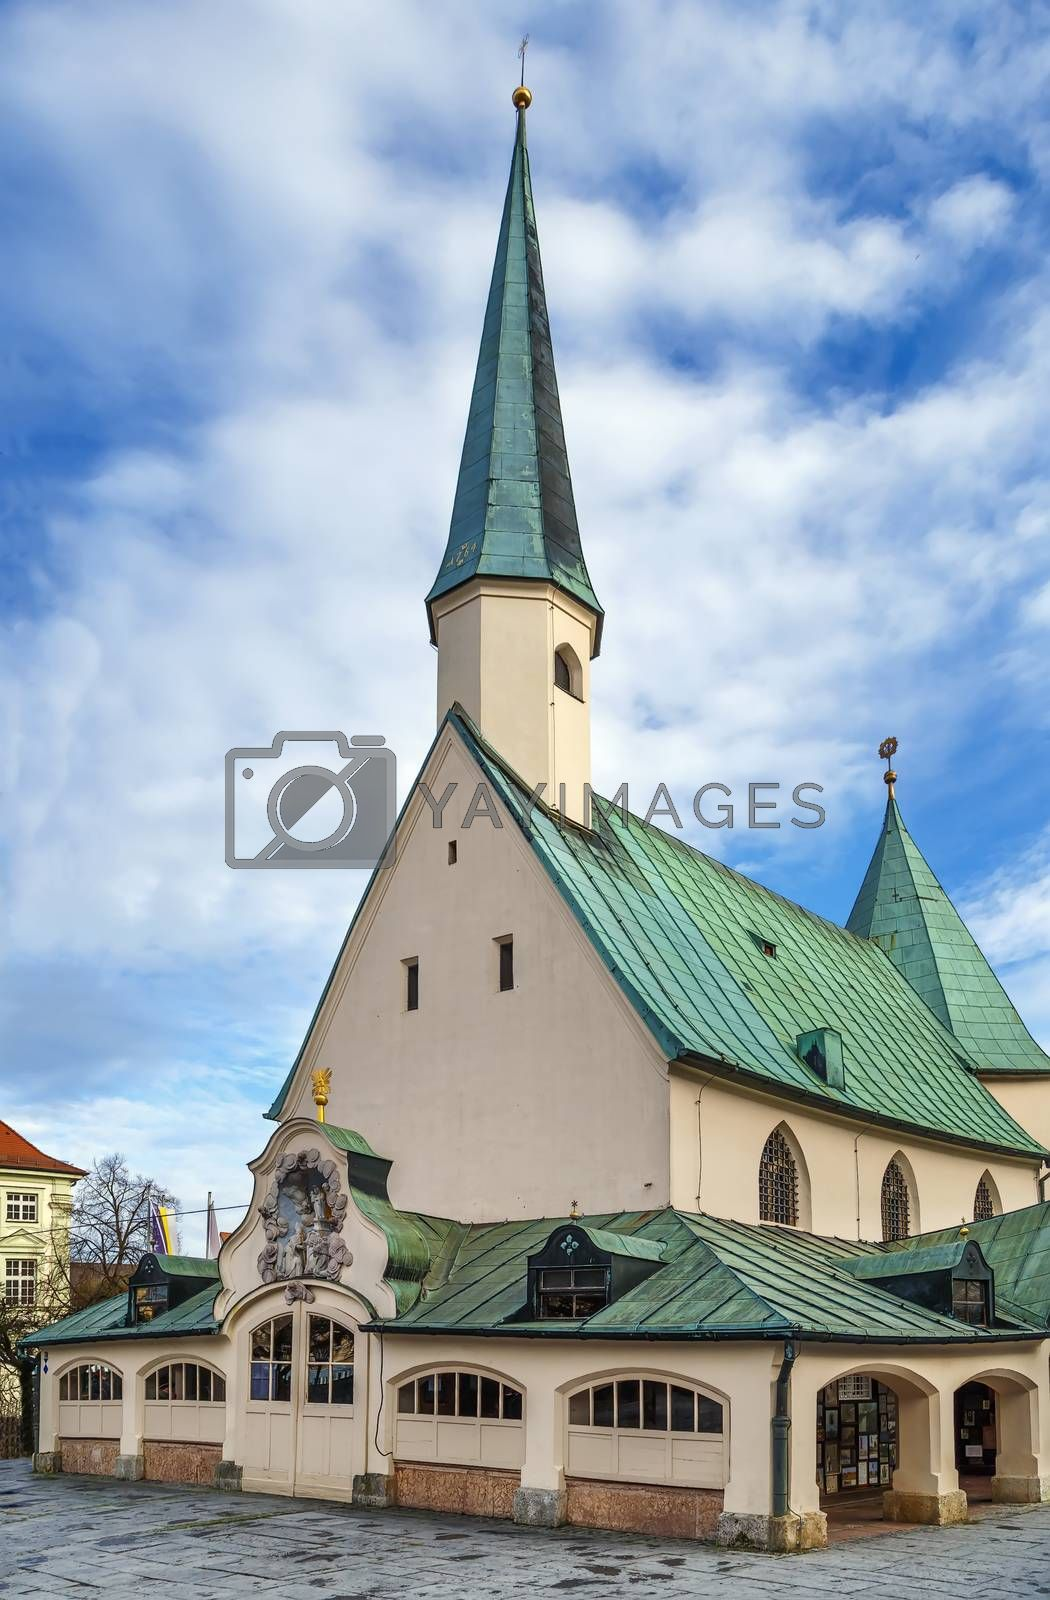 Shrine of Our Lady of Altotting, also known as the Chapel of Grace (Gnadenkapelle), is the national shrine of Bavaria dedicated to the Blessed Virgin Mary. Altotting, Germany